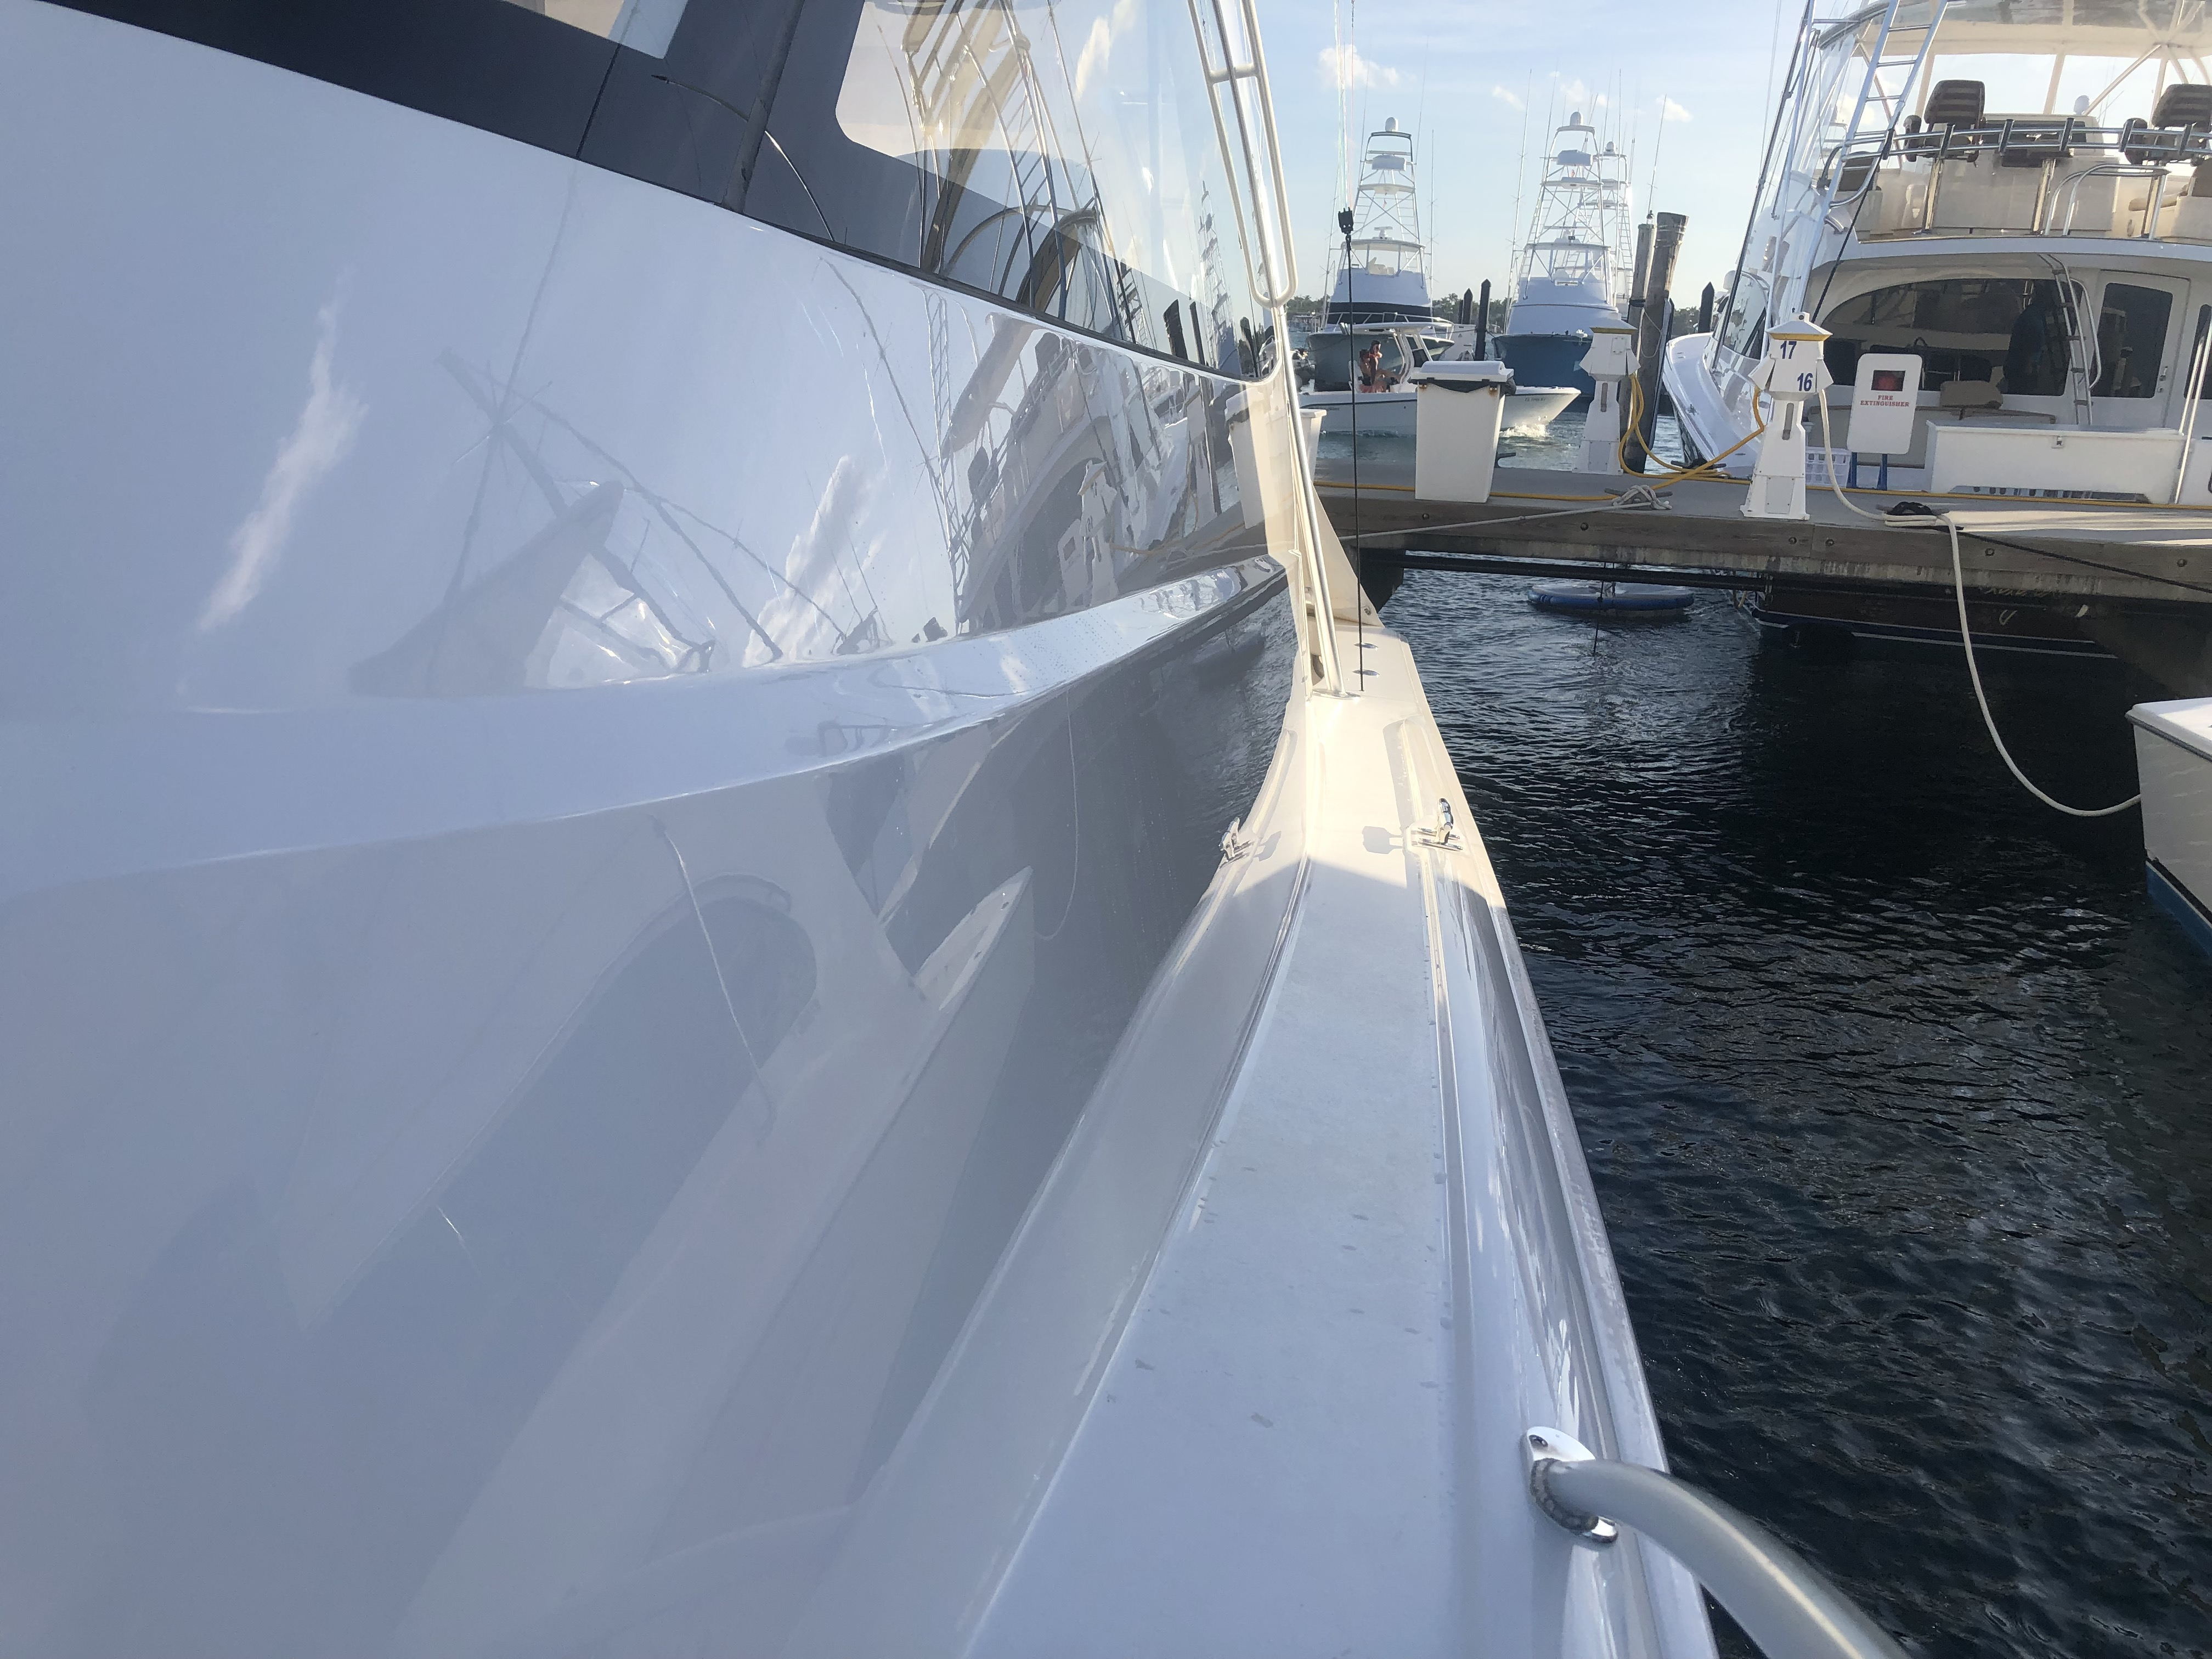 Port side of 52' Viking docked at marina after Glidecoat yacht ceramic coating protection application